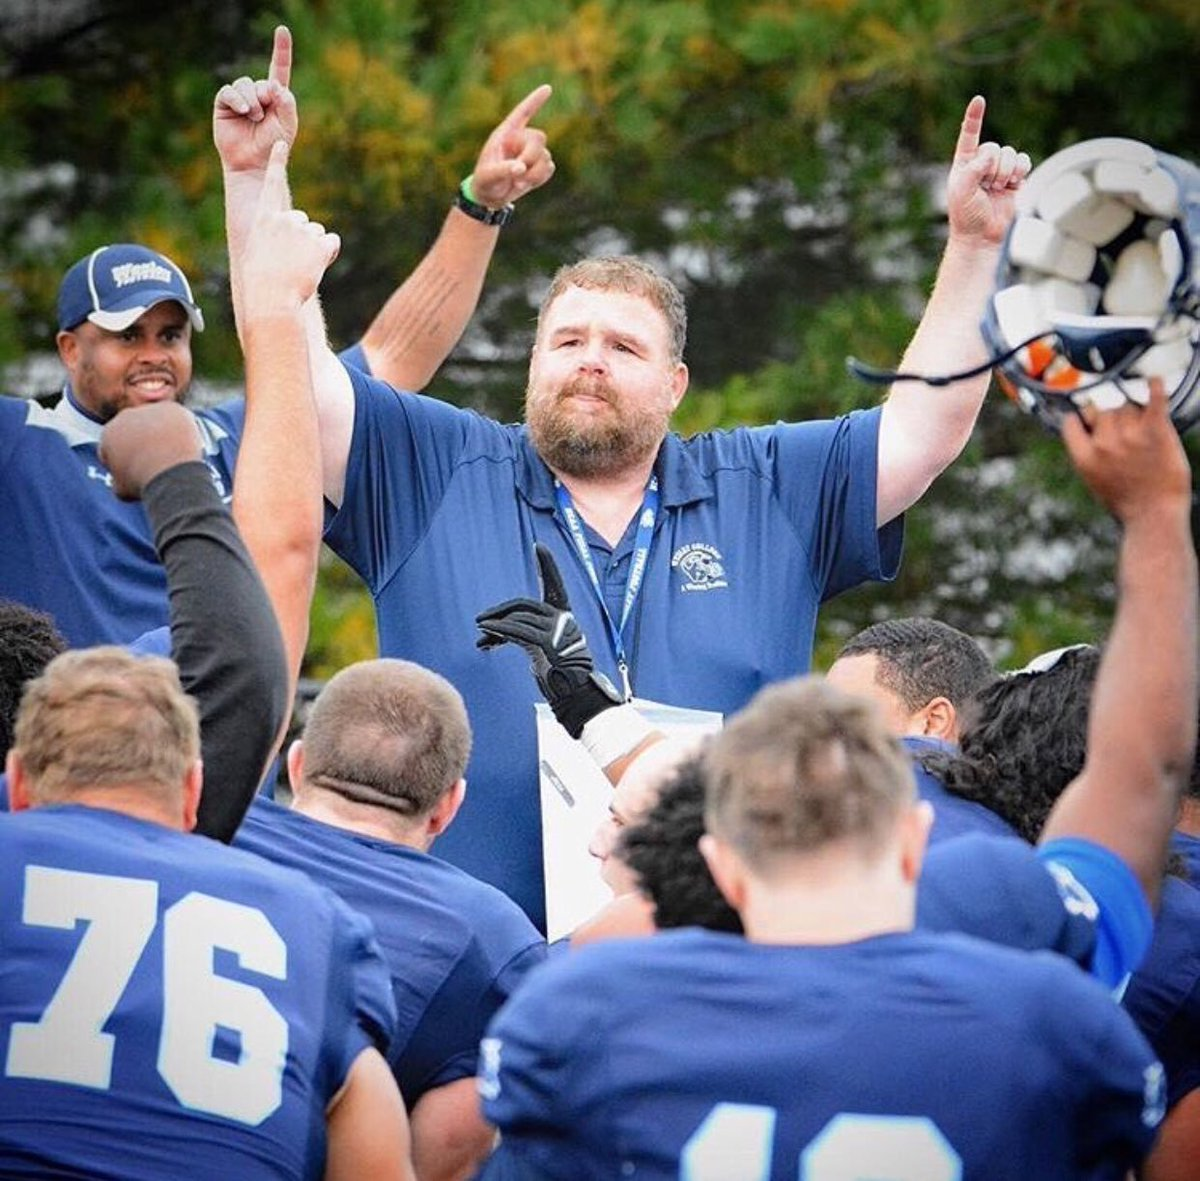 Today marks exactly a year that we lost Coach Drass. His impact and legacy still lives on today throughout the Wesley and Division III community. #Together